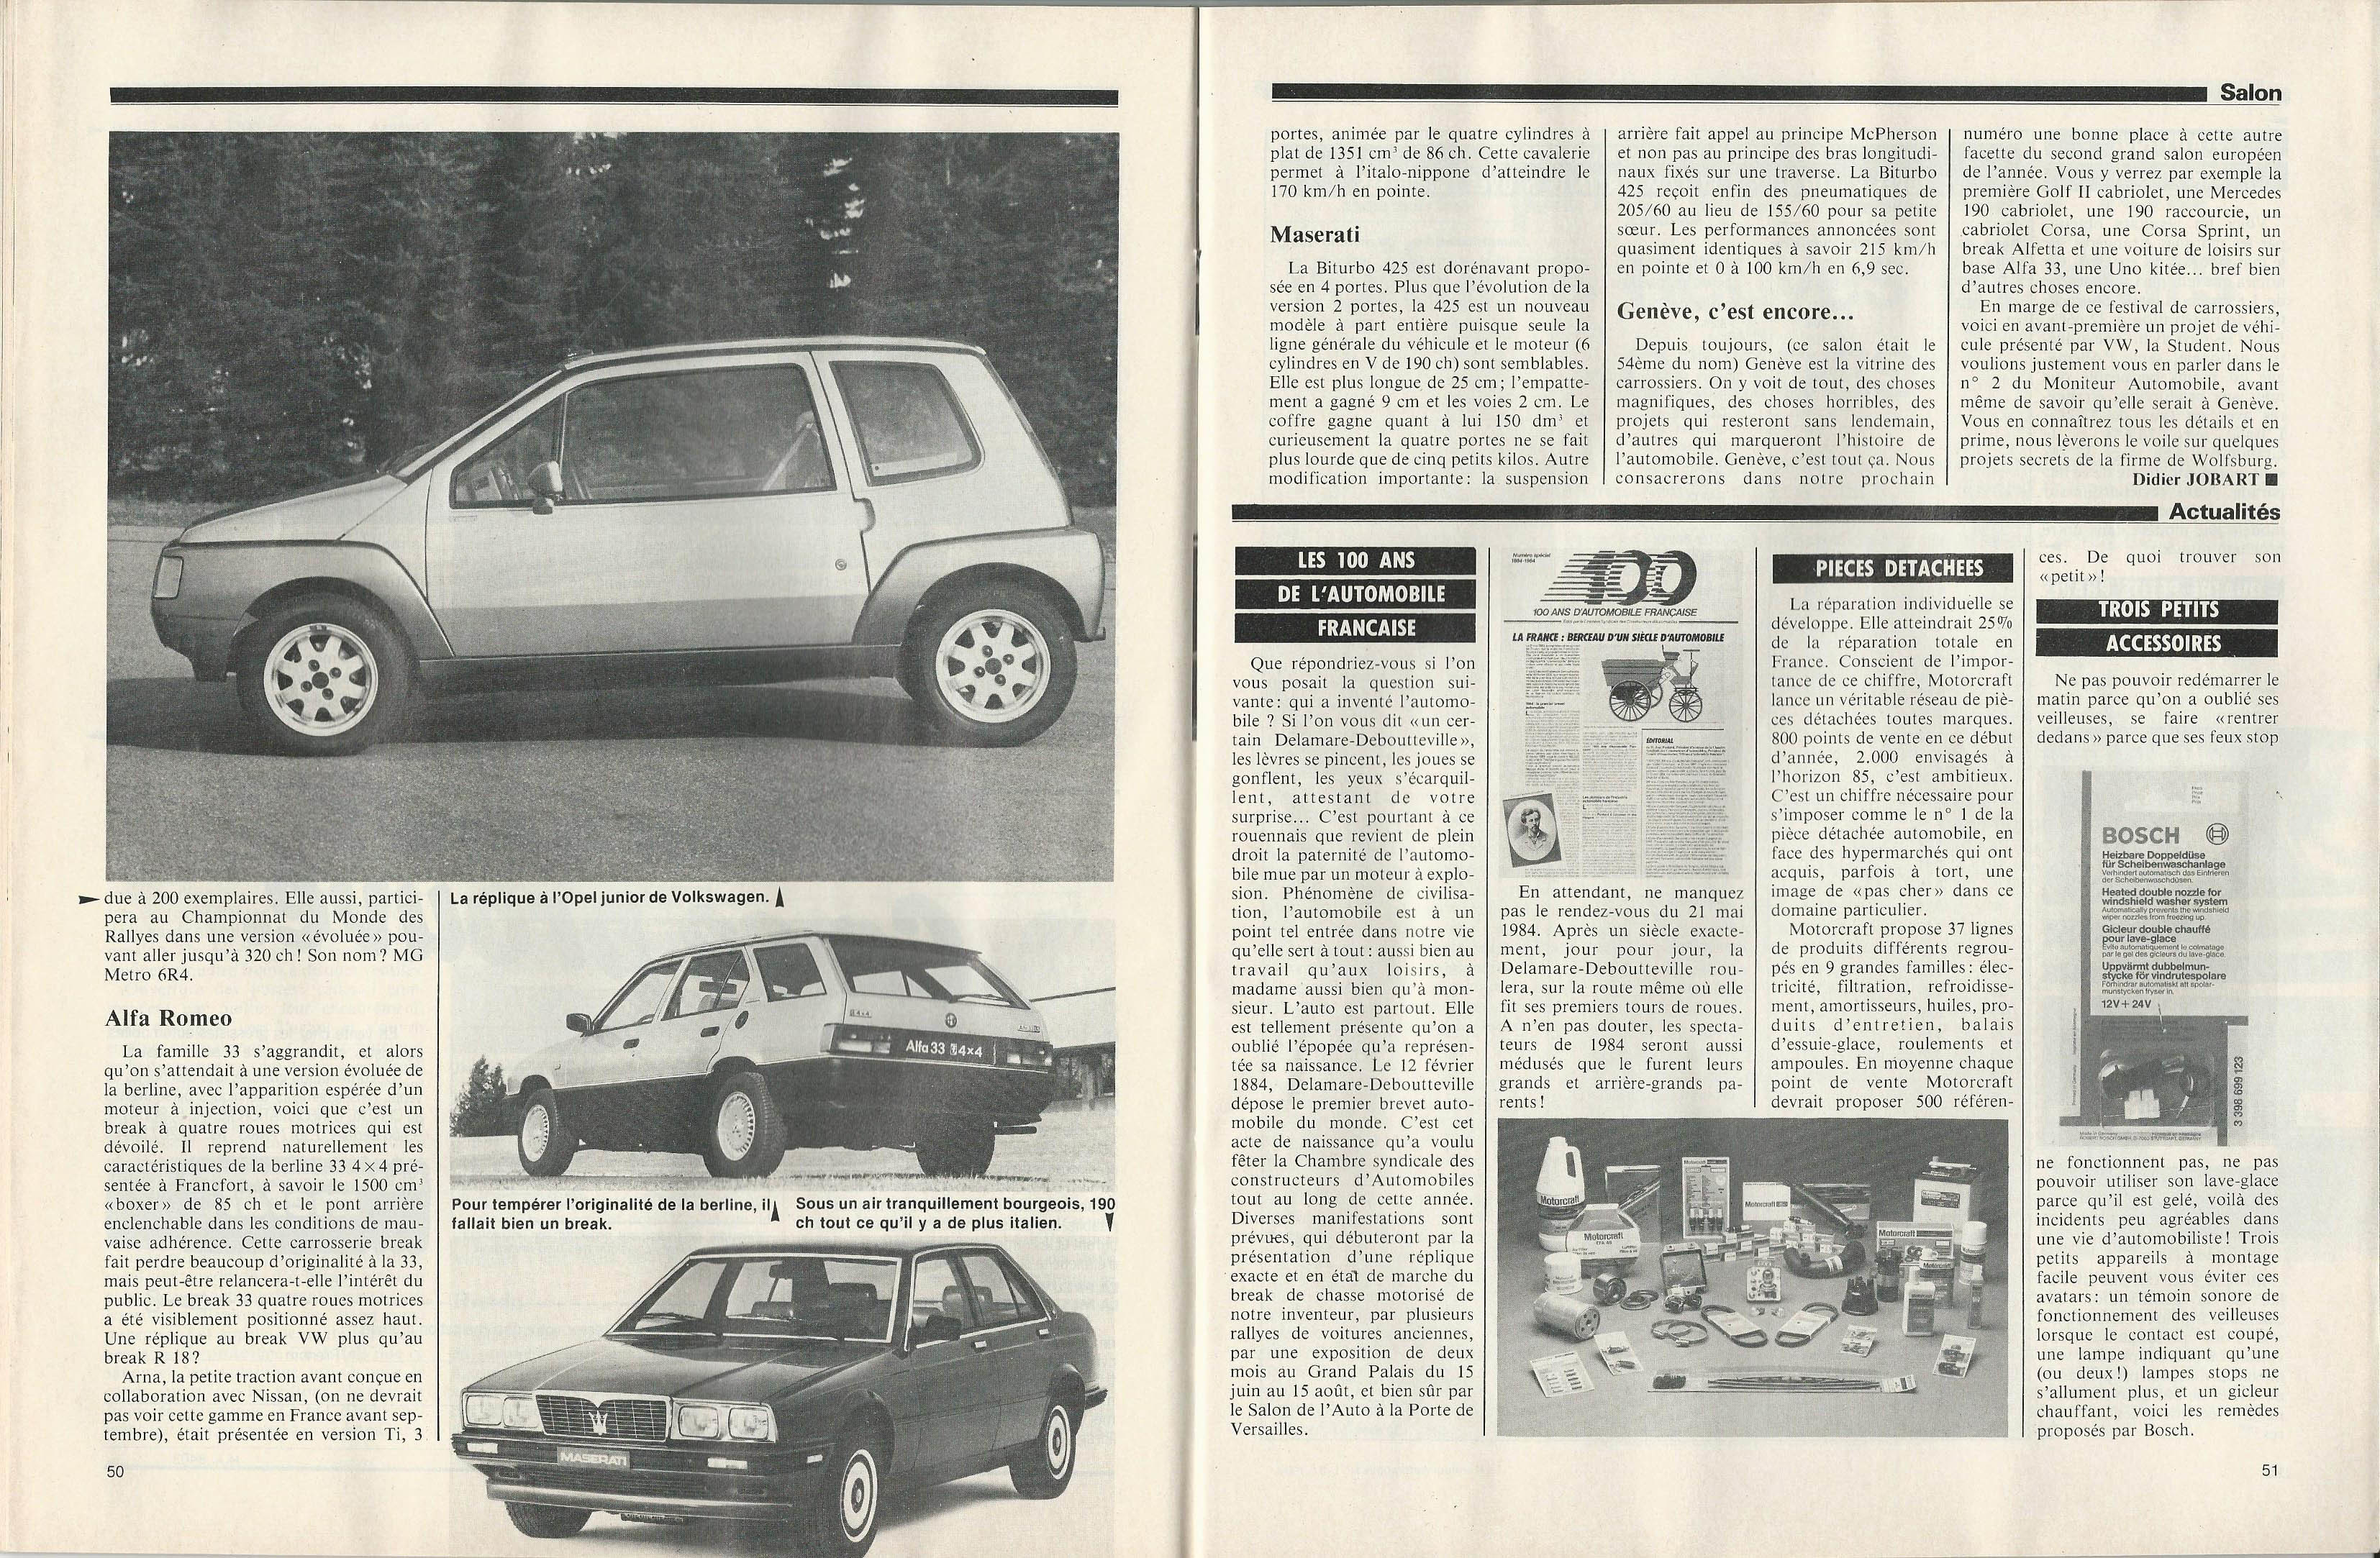 Moniteur Automobile 01 - 08 Mars 1984 (26)